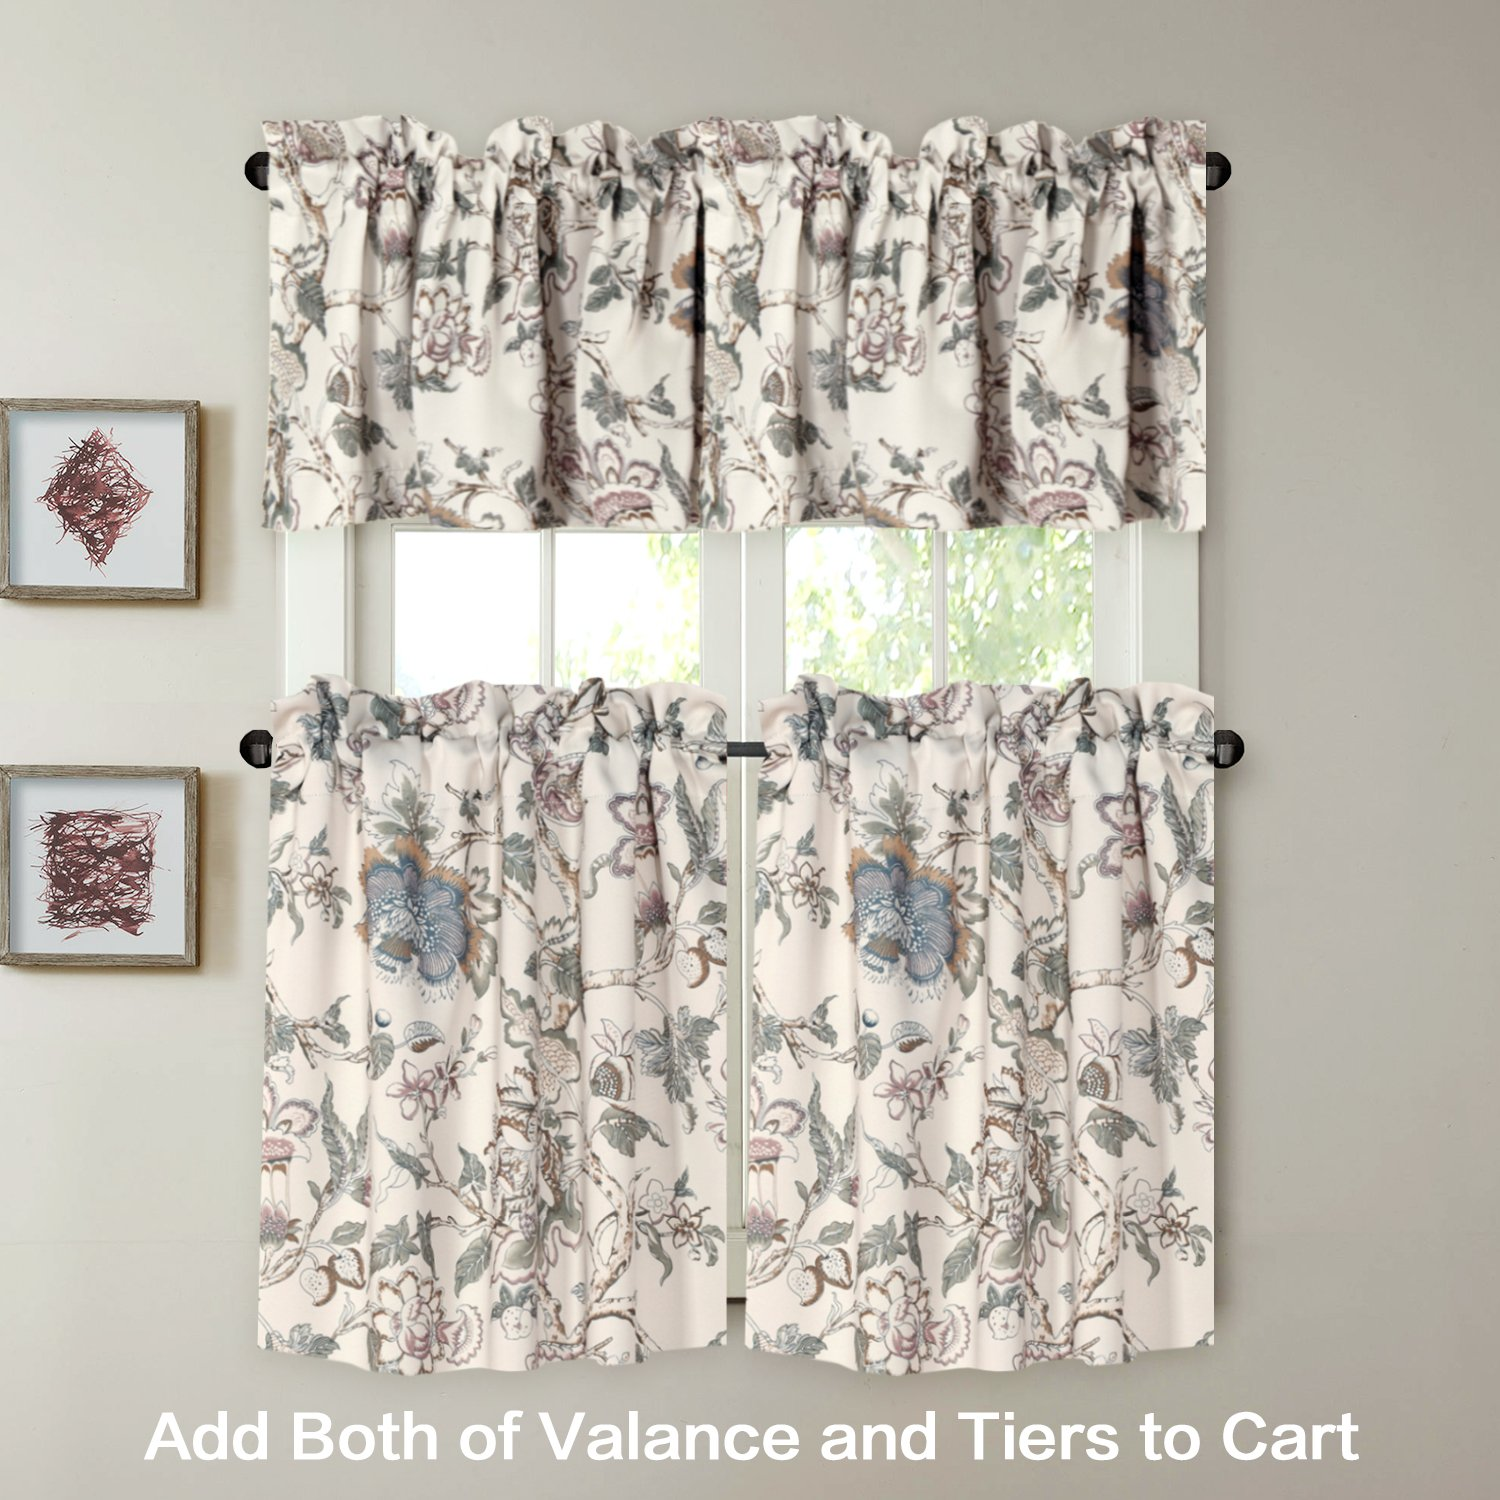 H.VERSAILTEX Window Valance Rustic Style Ultra Soft Material Suits Kitchen Bath Laundry Bedroom Living Room (Rod Pocket, 58 15 inch, Vintage Floral Pattern in Sage Brown, Set of 1) by H.VERSAILTEX (Image #3)